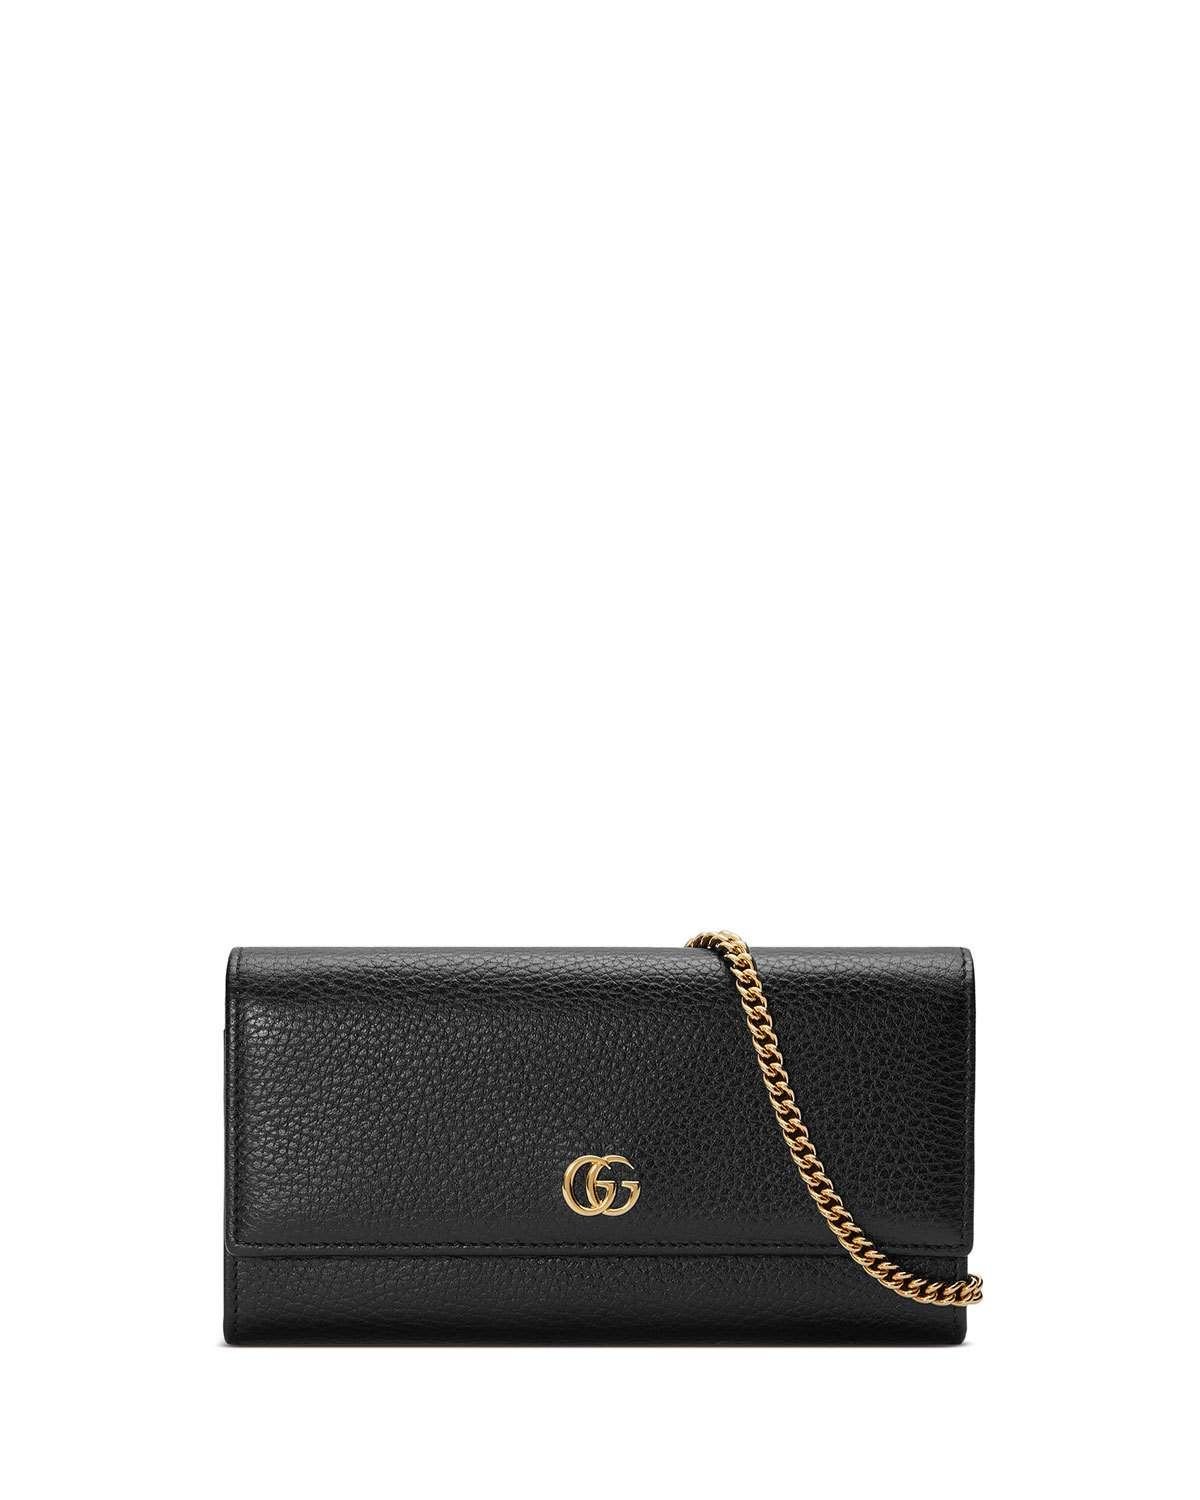 741048db396  Gucci  NeimanMarcus - GucciPetite GG Marmont Leather Flap Wallet on a  Chain.